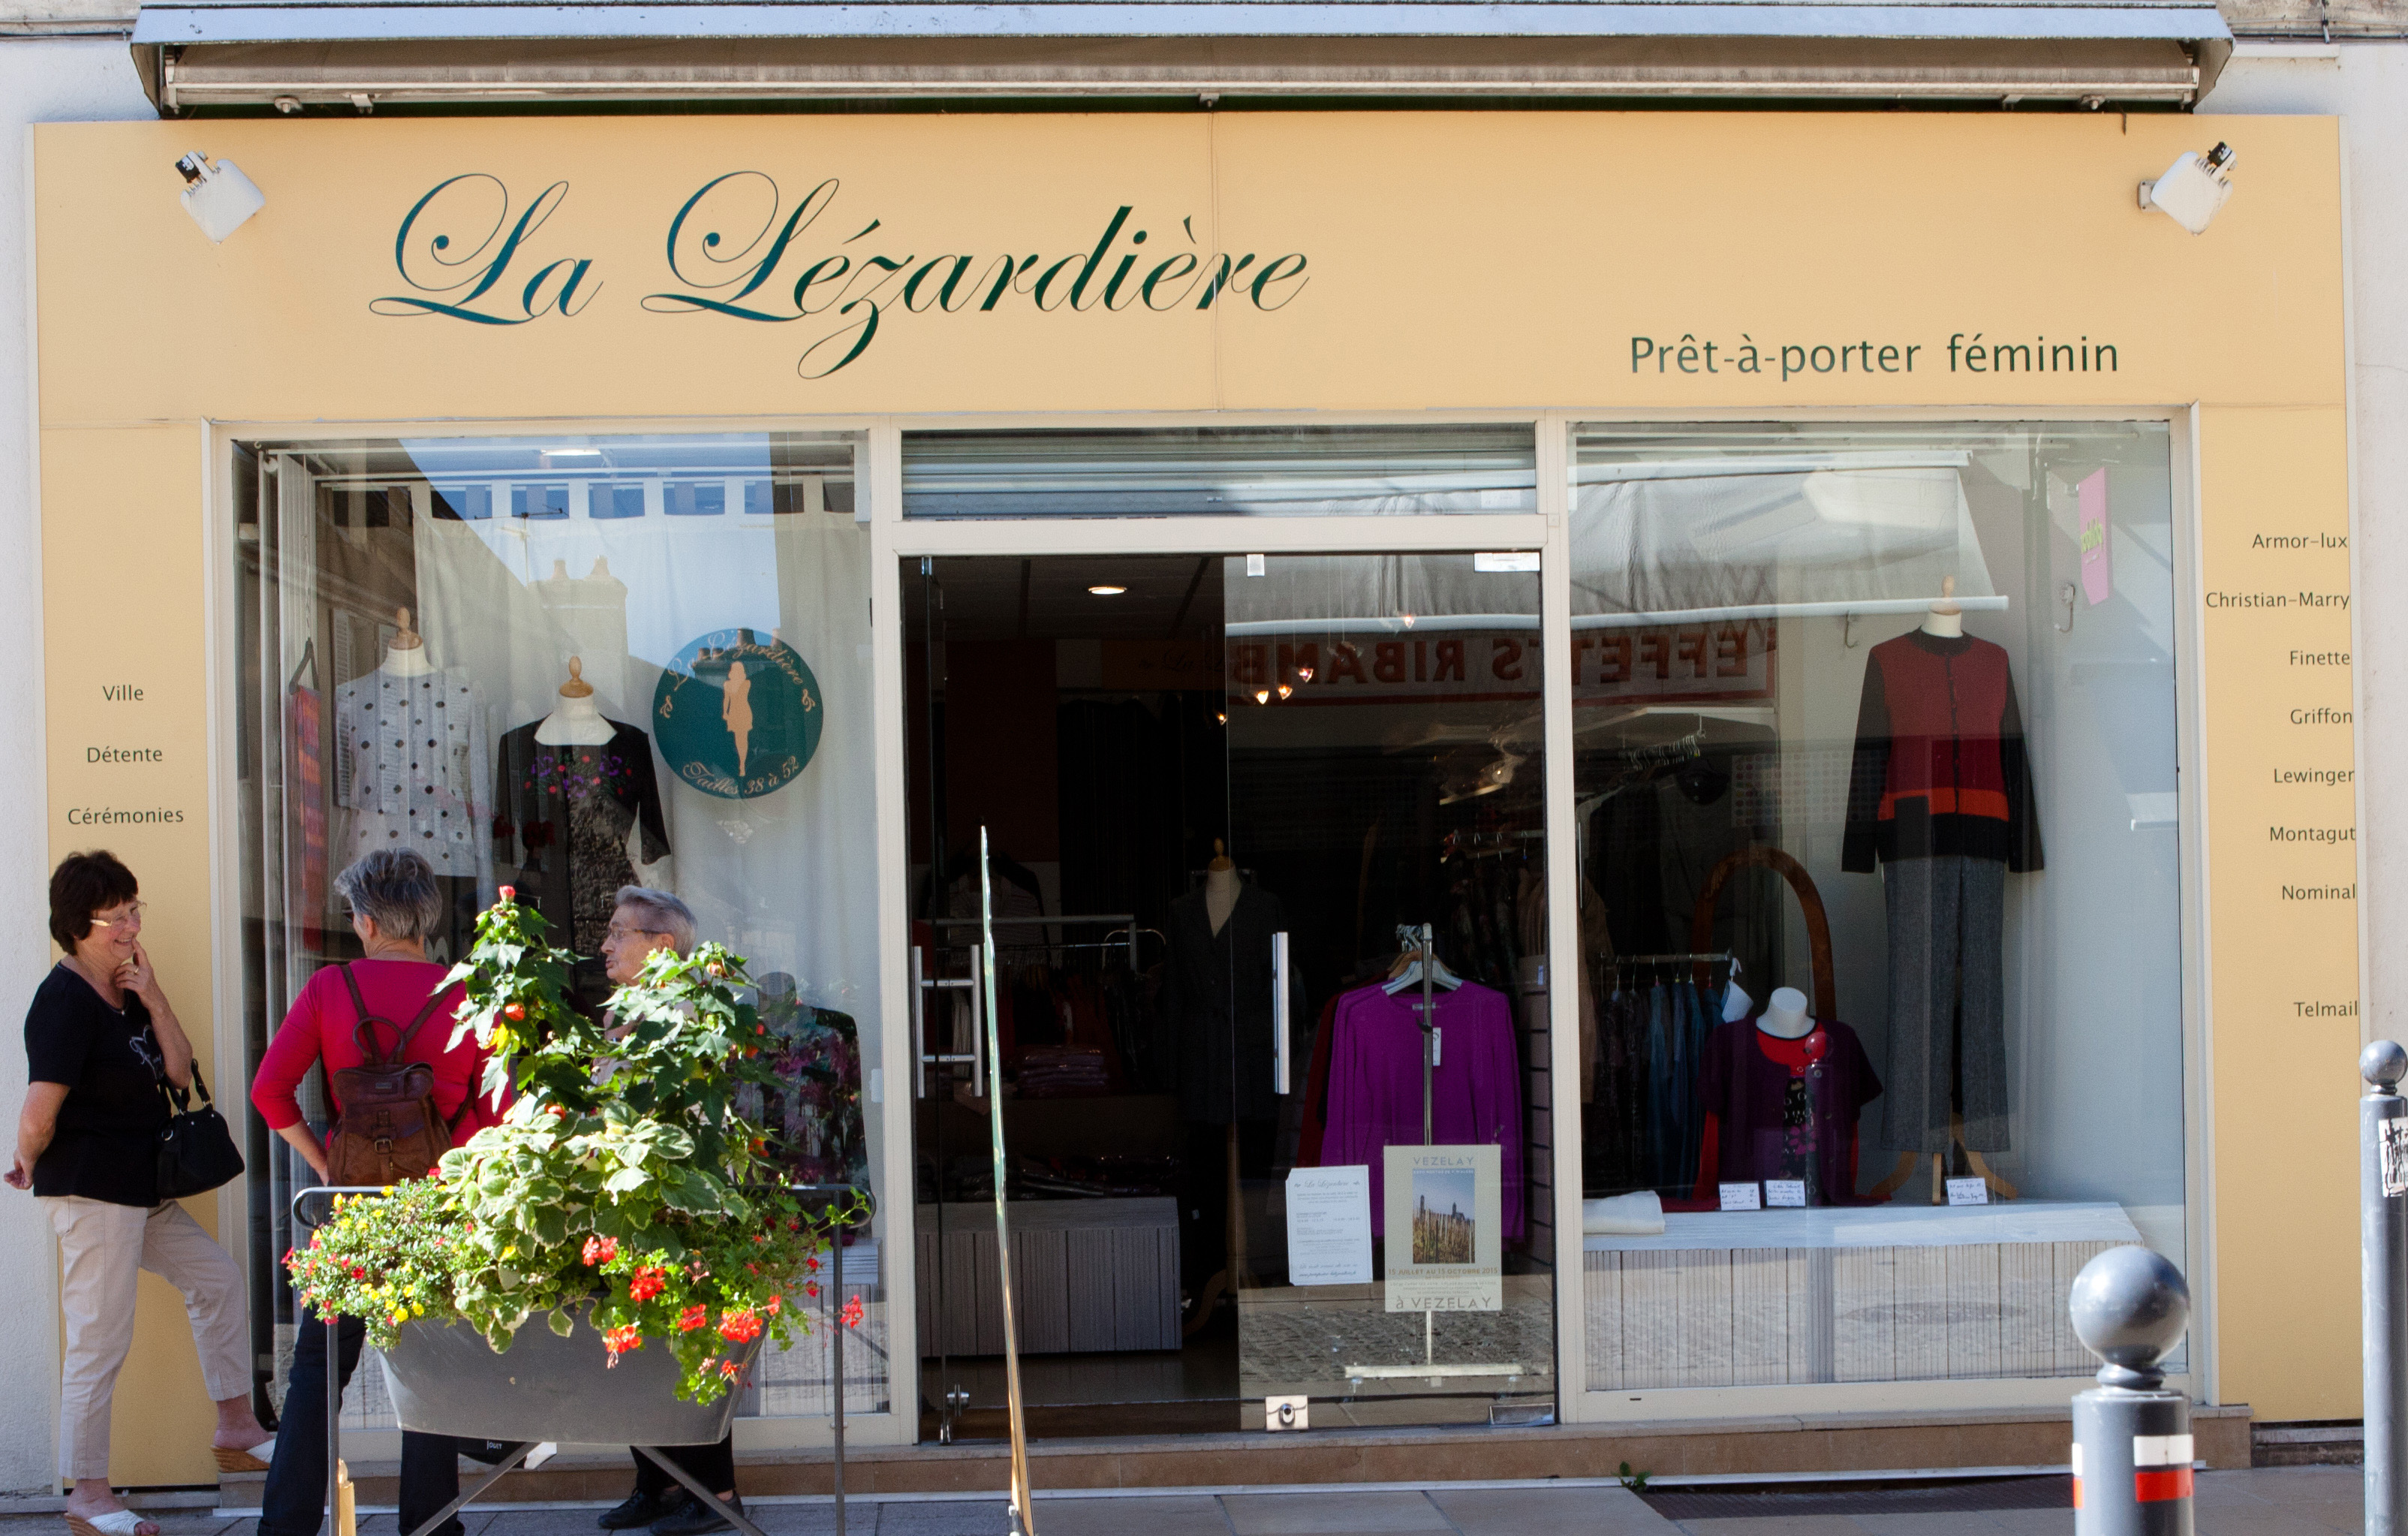 La boutique de centre ville